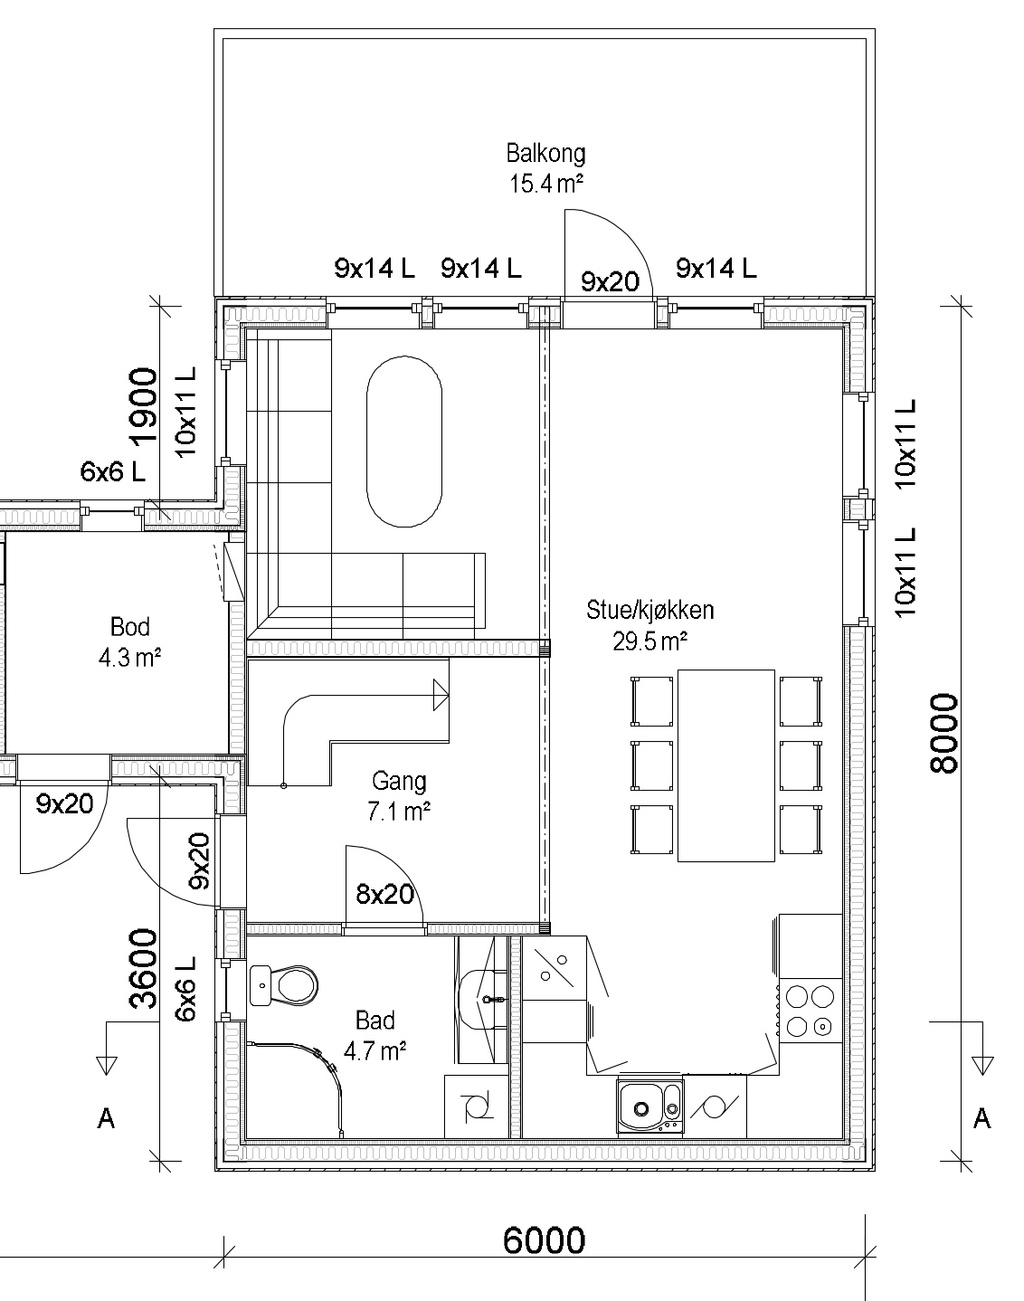 /pictures/roanrorbu/BO/makrellen_ground_floor_Plan og snitt.jpg